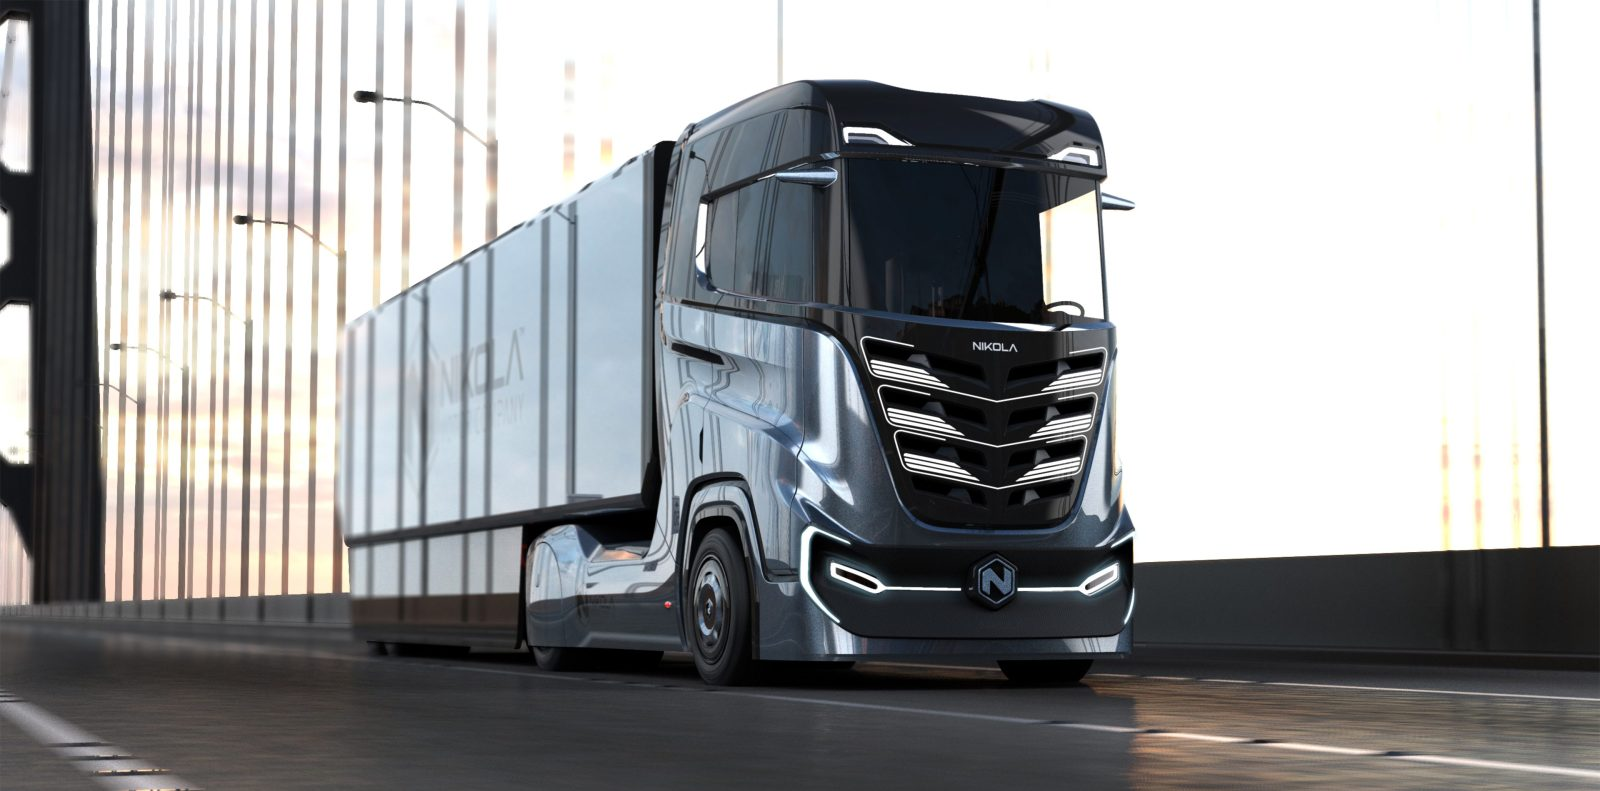 Nikola Motor claims major battery breakthrough, comes with major grain of salt